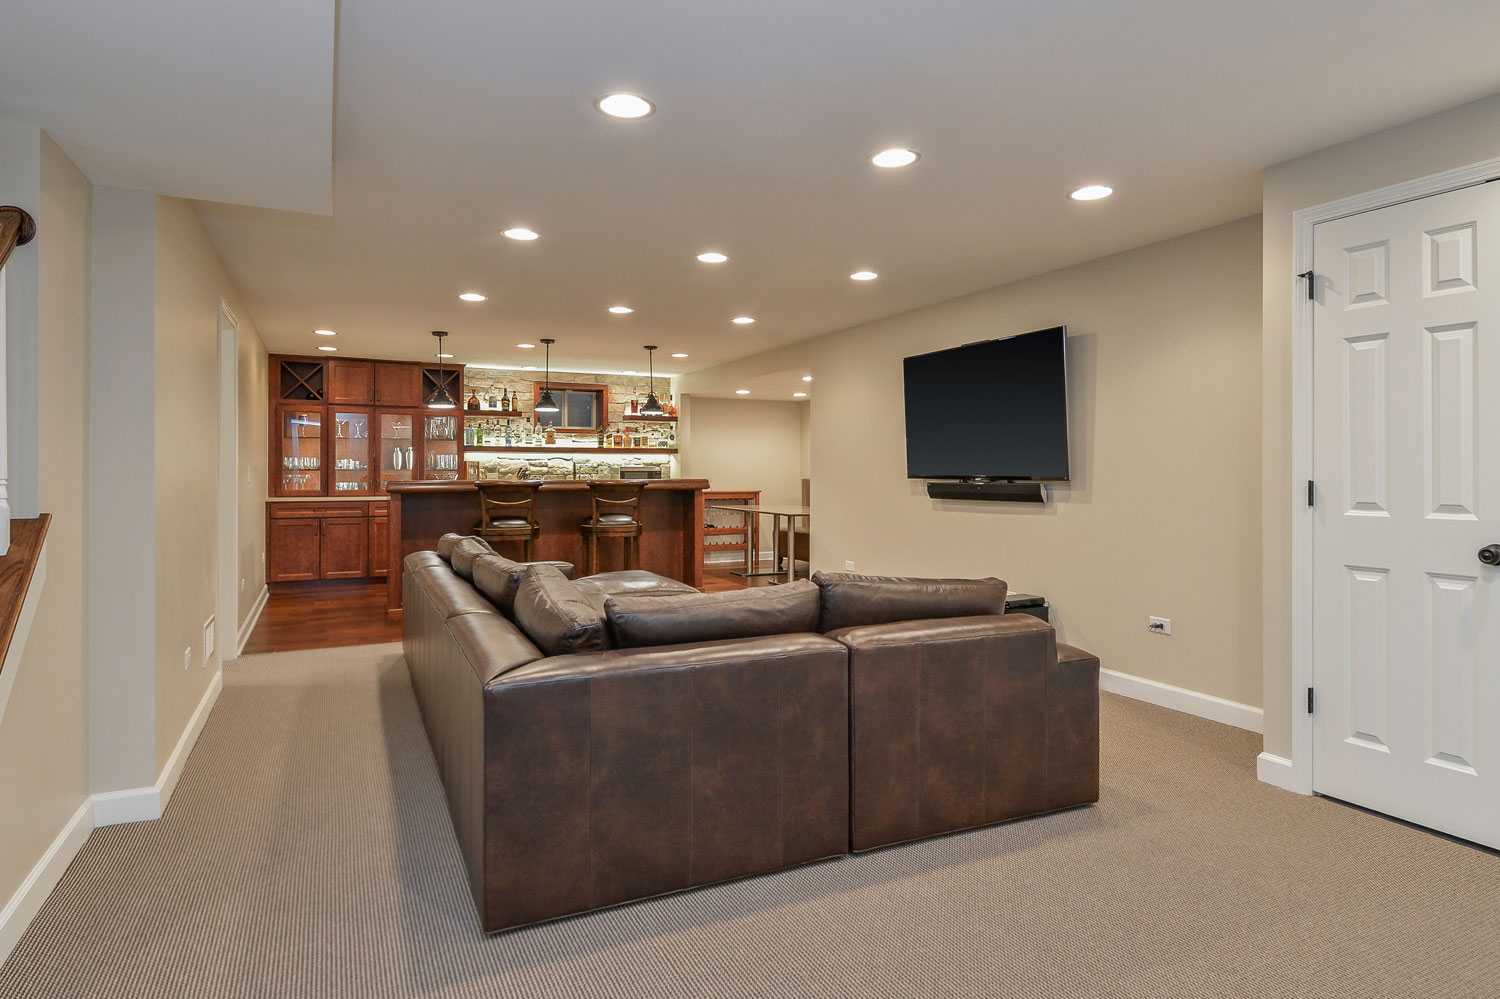 Chuck jen 39 s basement remodel pictures home remodeling contractors sebring design build - Basement design services ...